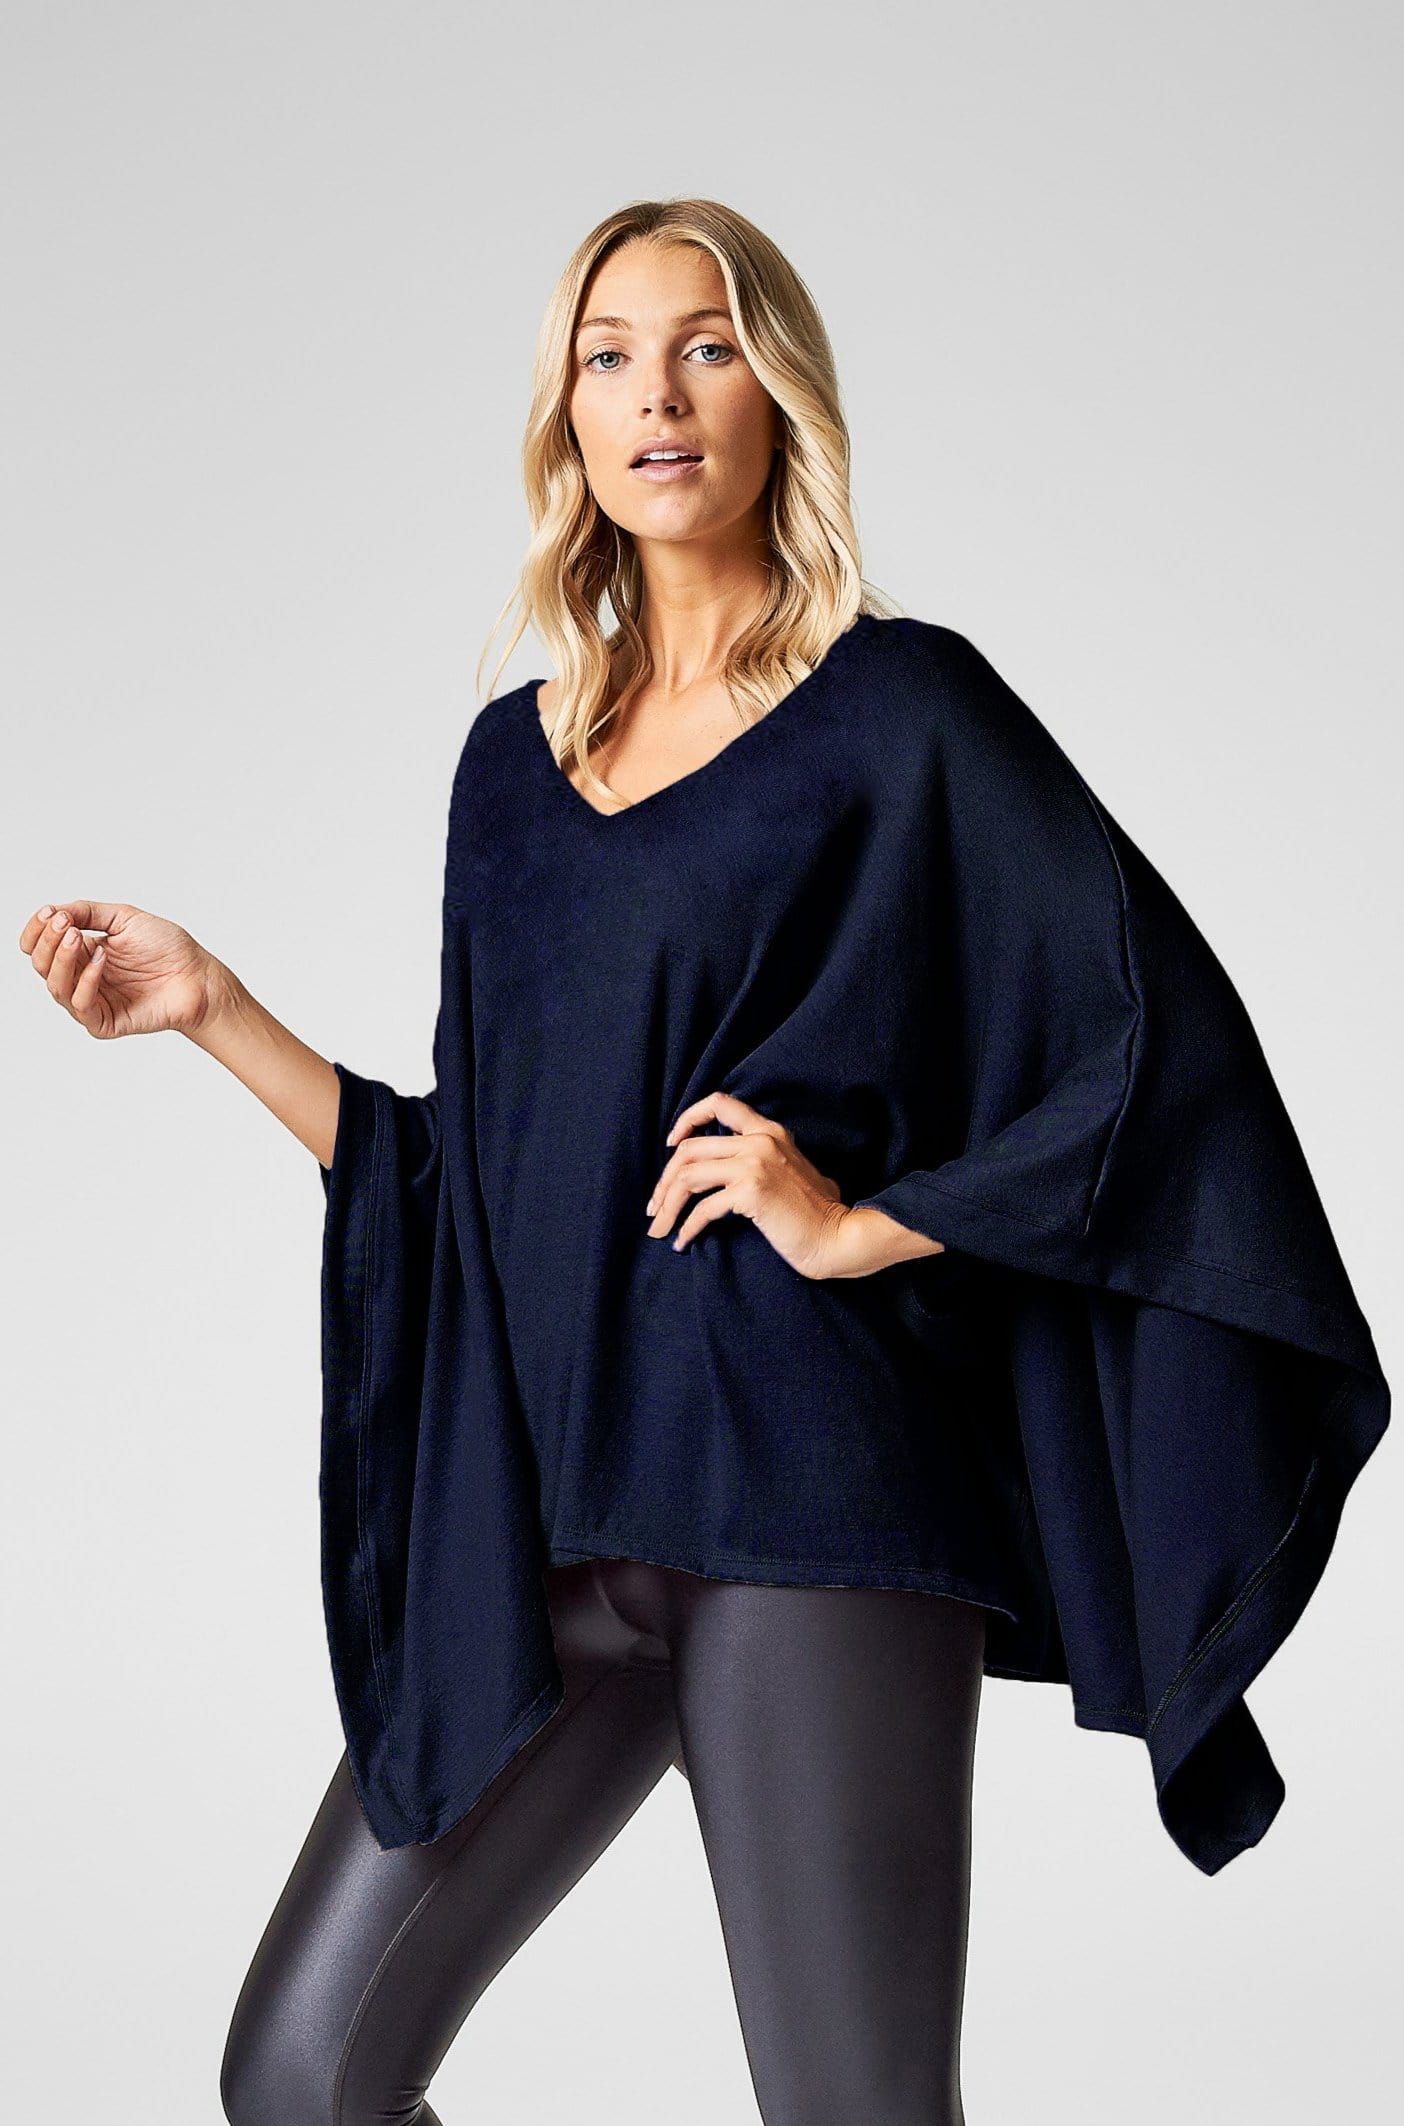 A woman wears a navy poncho with black liquid leggings.